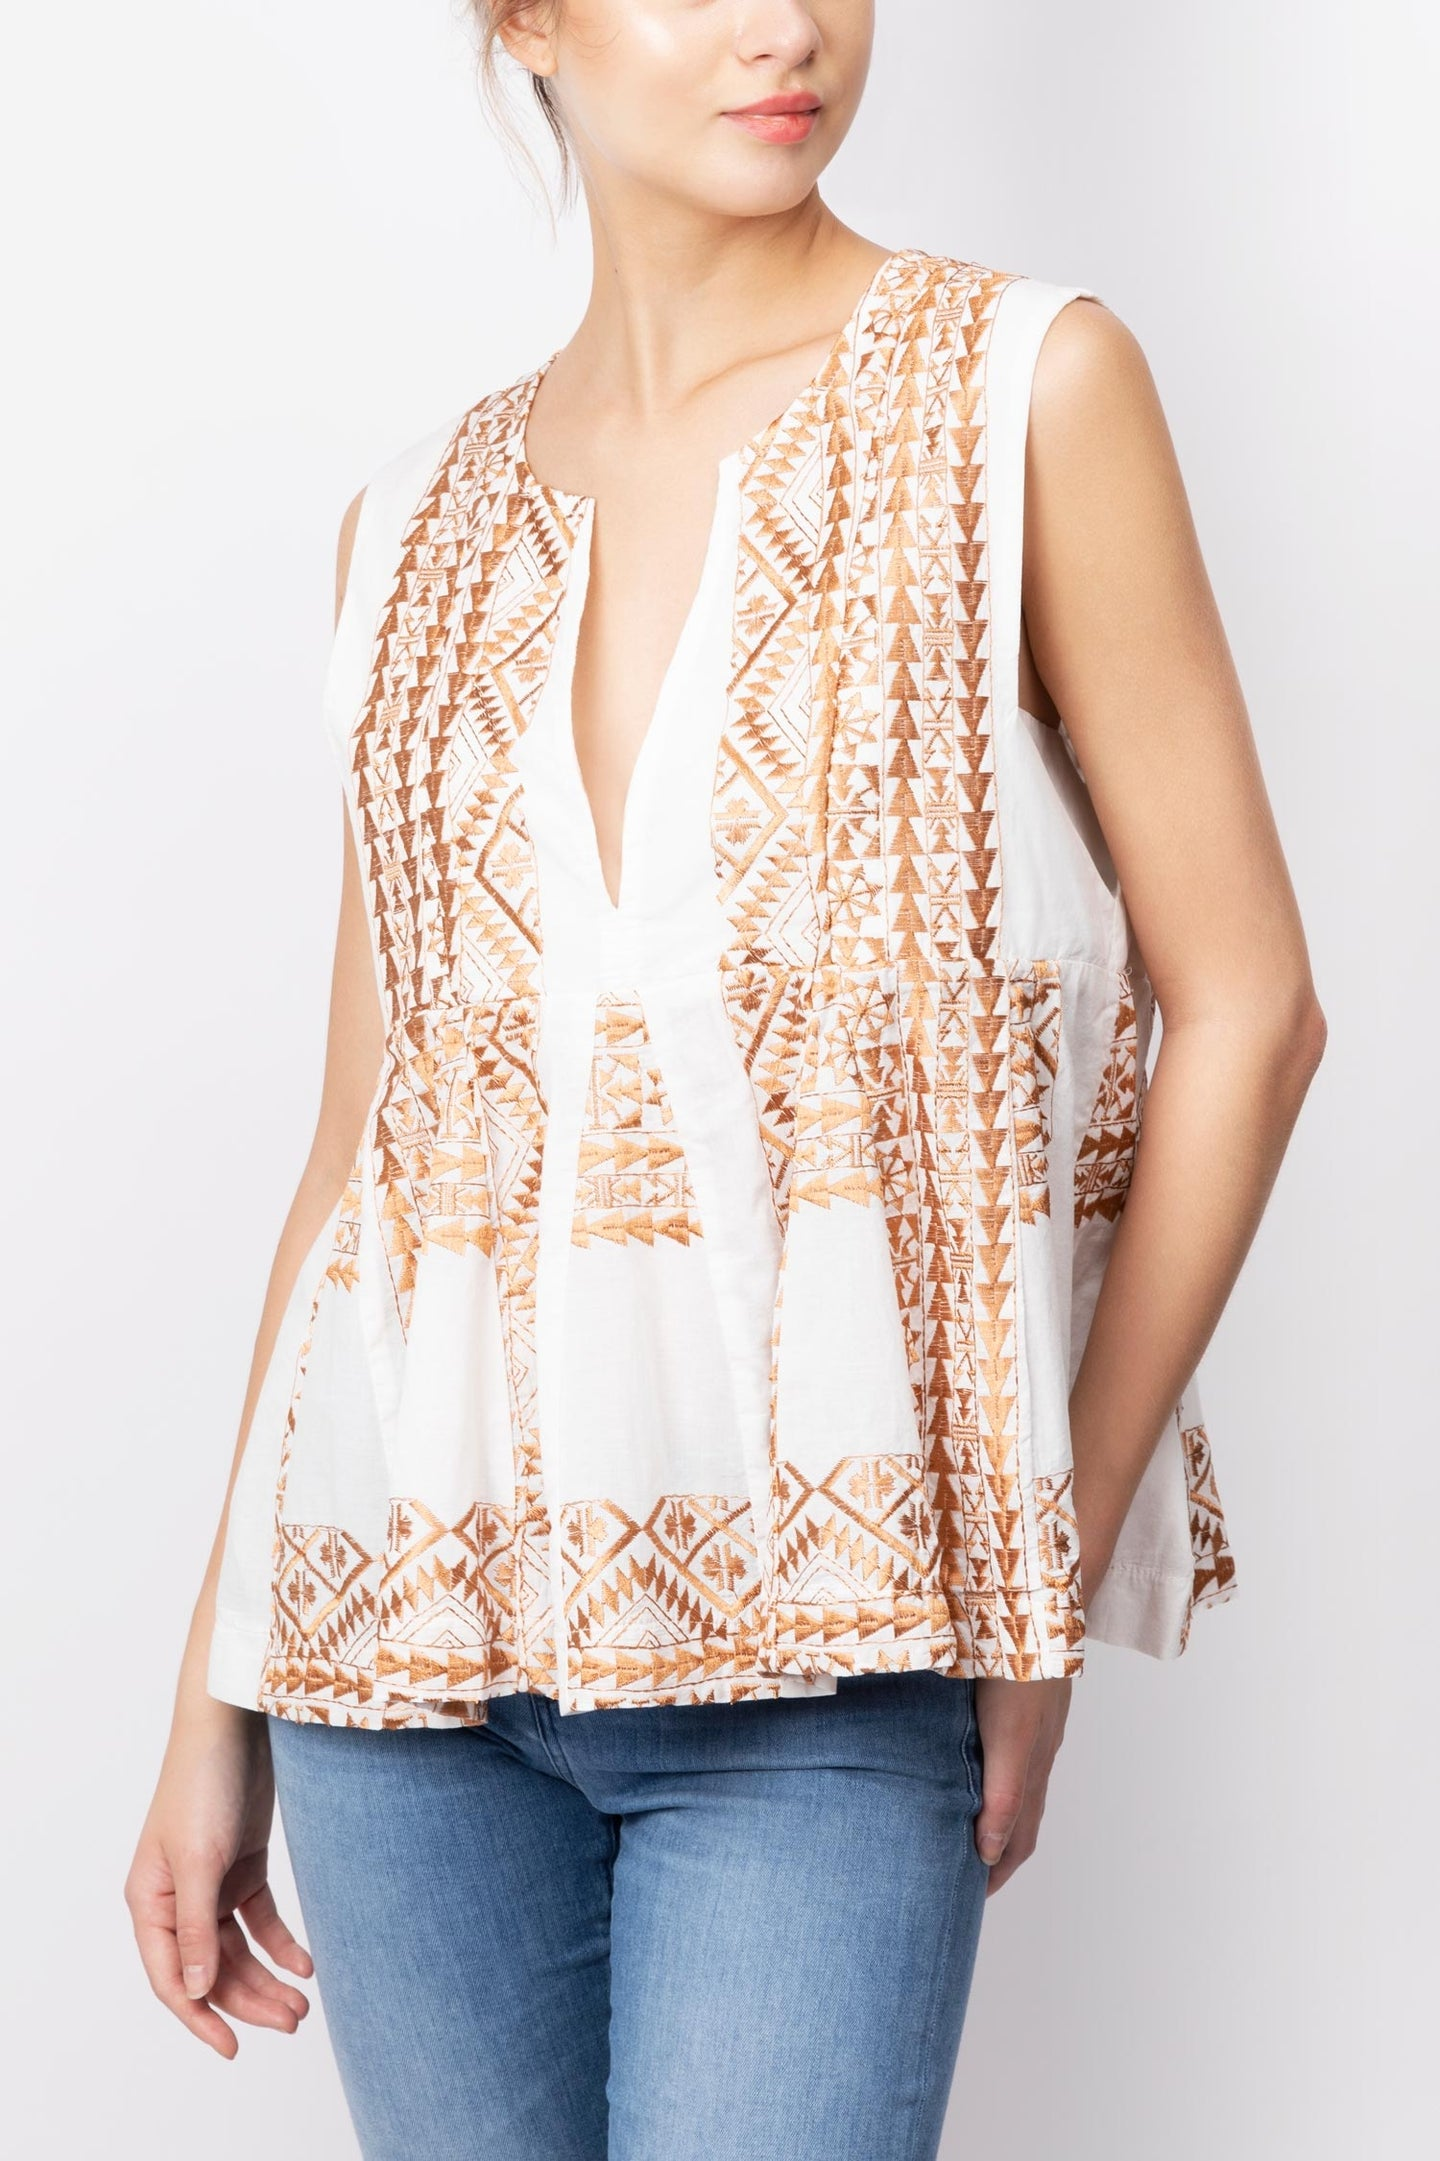 Tiered Embroidery Top